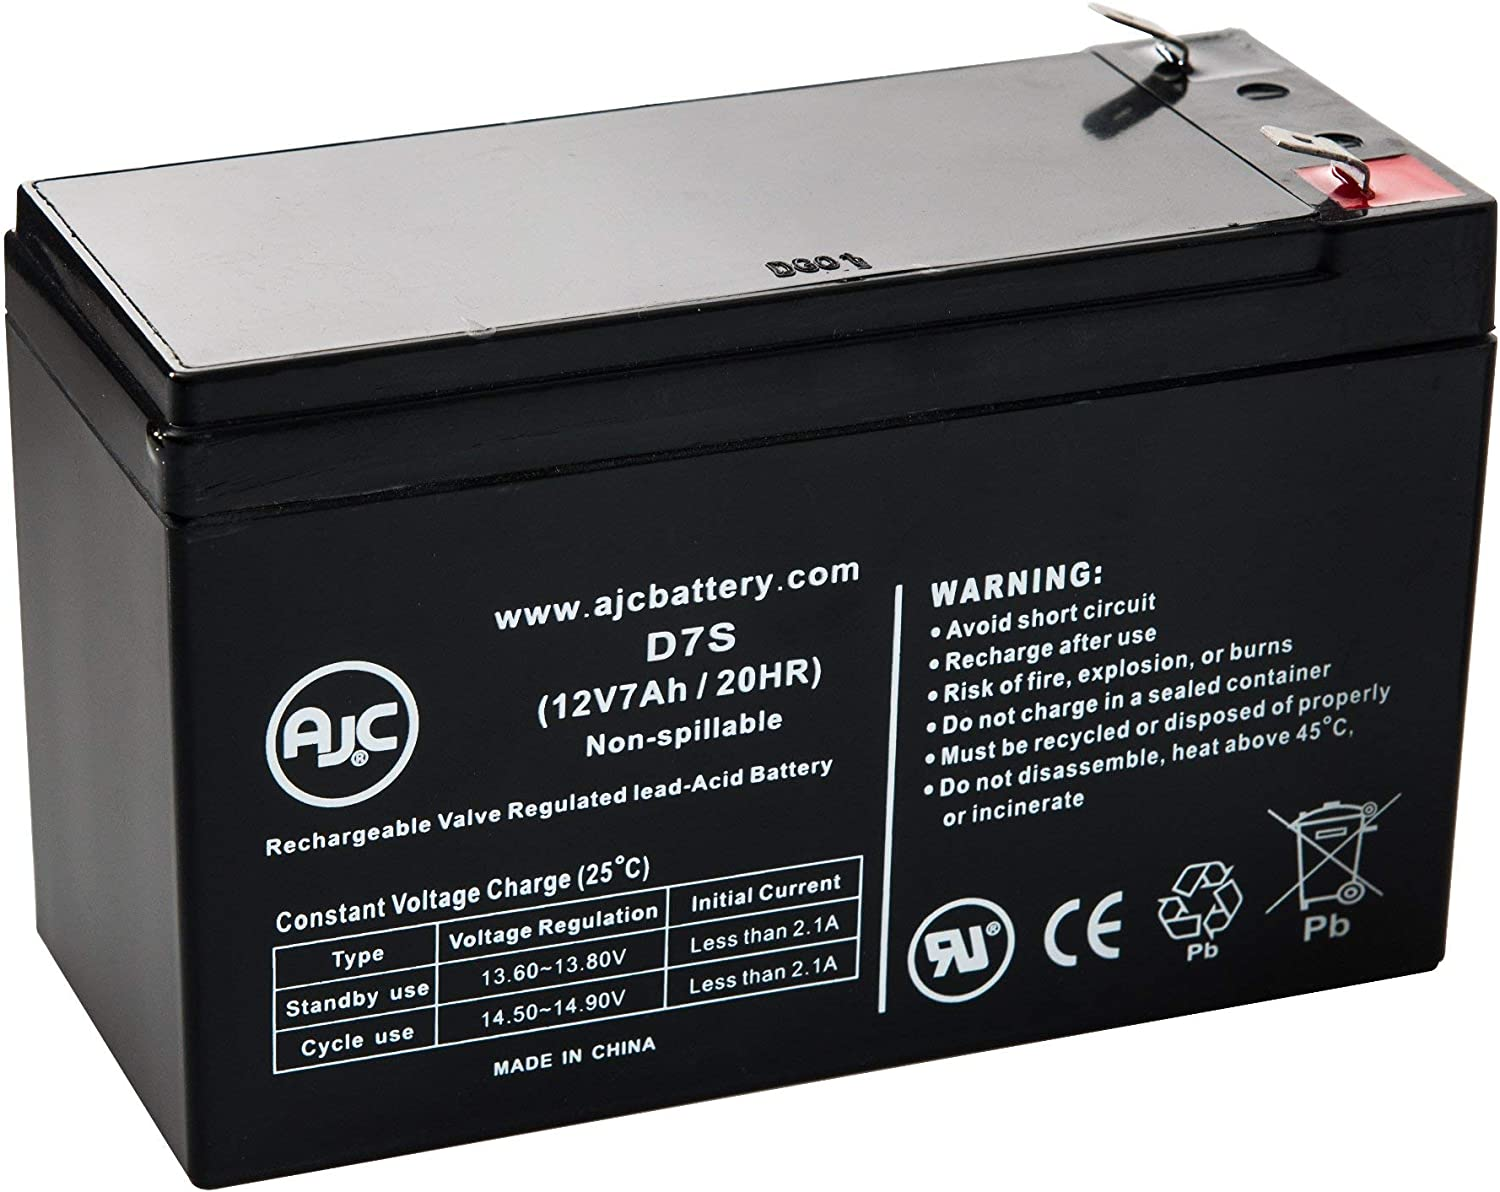 JohnLite CY-0112 12V 7Ah Emergency Light Battery This is an AJC Brand Replacement